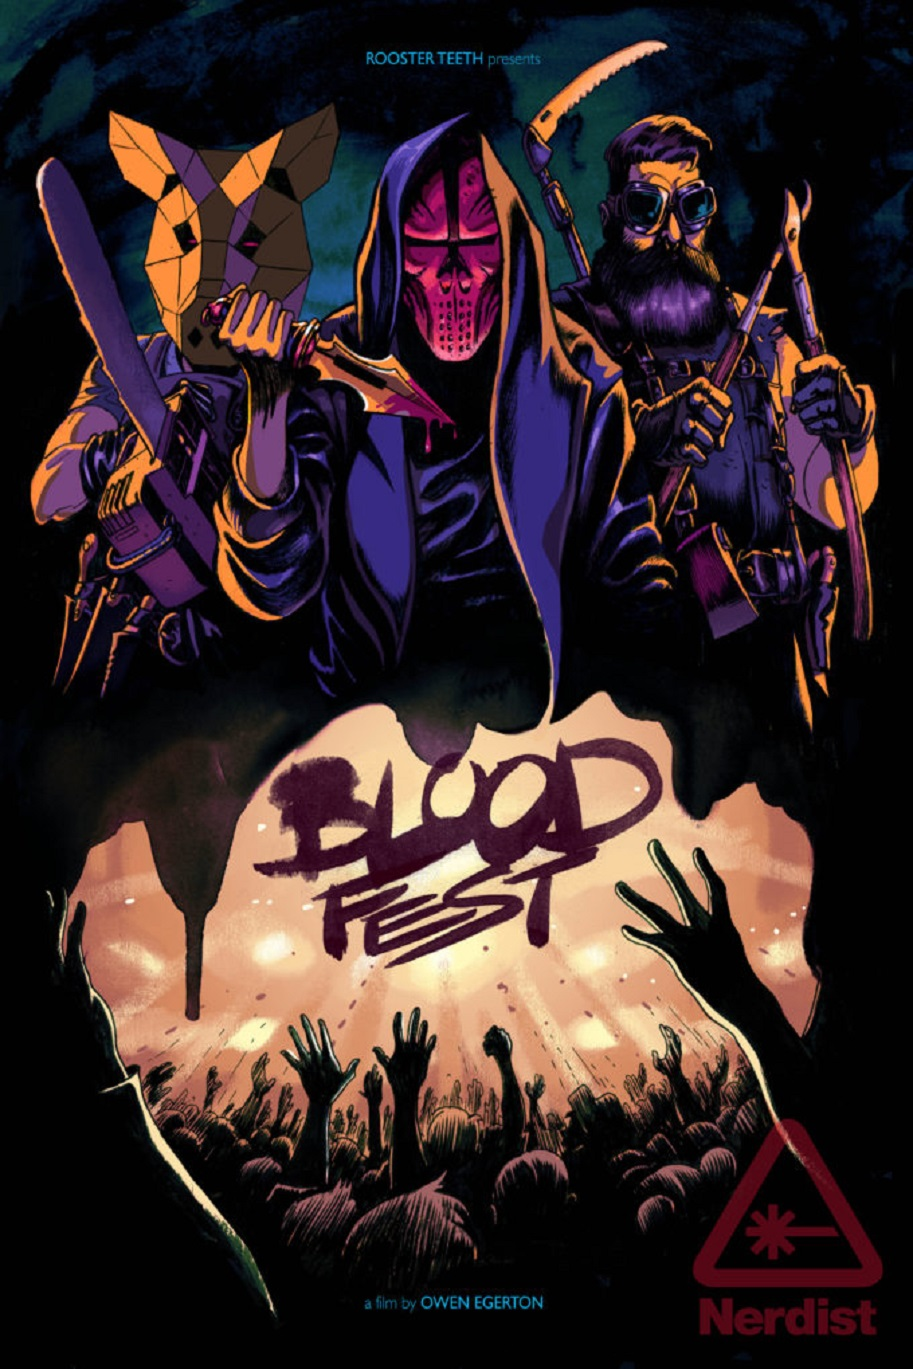 Blood Fest Poster Art